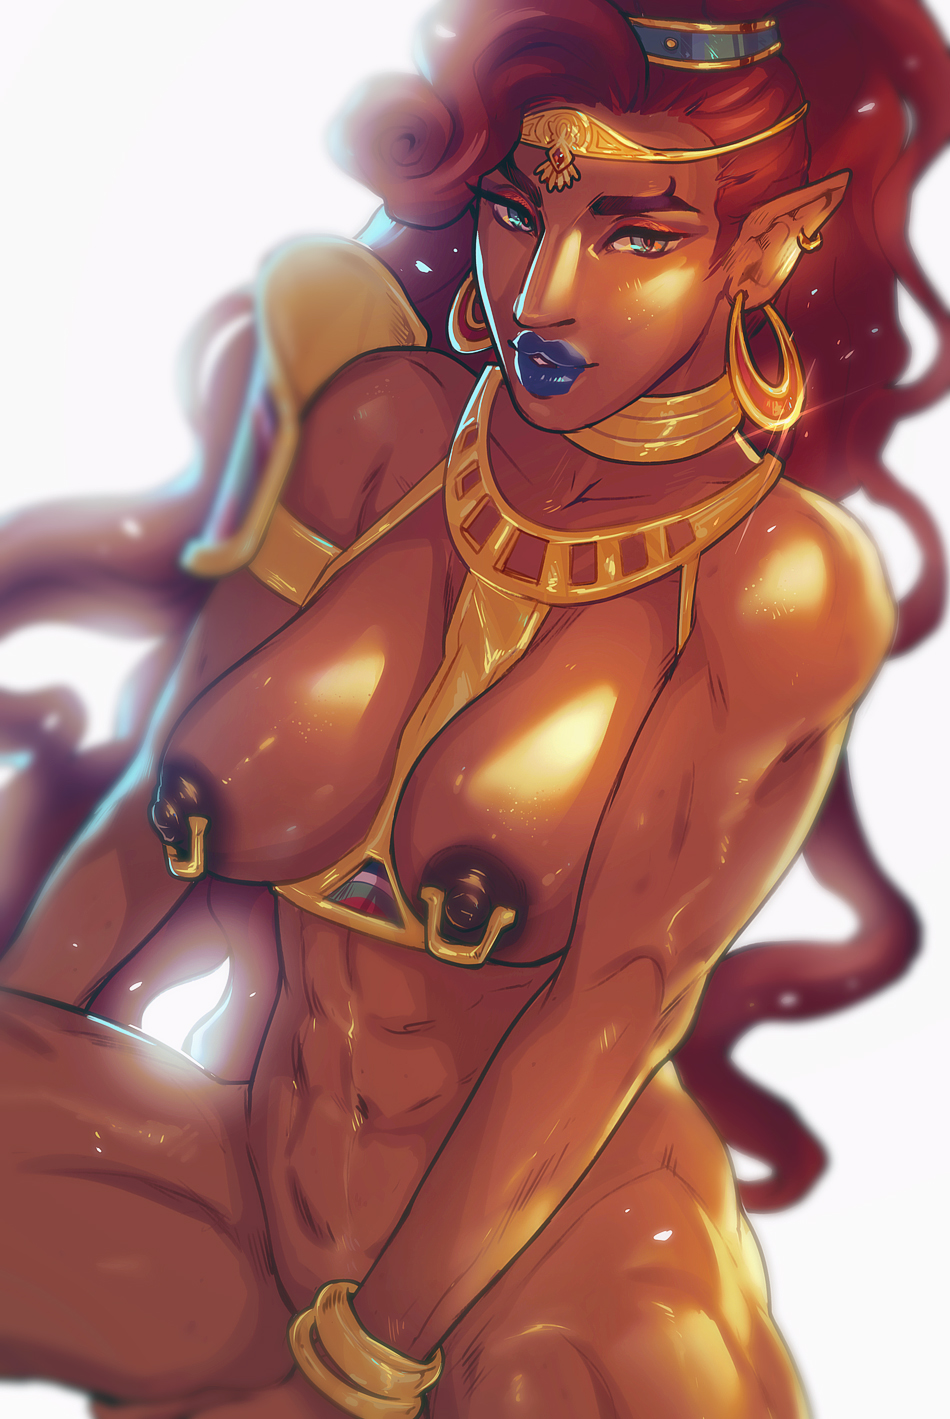 1girl abs asieybarbie belly big_nose bracelet breasts breath_of_the_wild dark-skinned_female dark_skin earrings female female_only gerudo hips jewelry large_breasts legs lipstick long_hair looking_at_viewer makeup muscle muscular_female navel nintendo nipples piercing pointy_ears red_hair solo the_legend_of_zelda thighs tiara toned urbosa very_long_hair